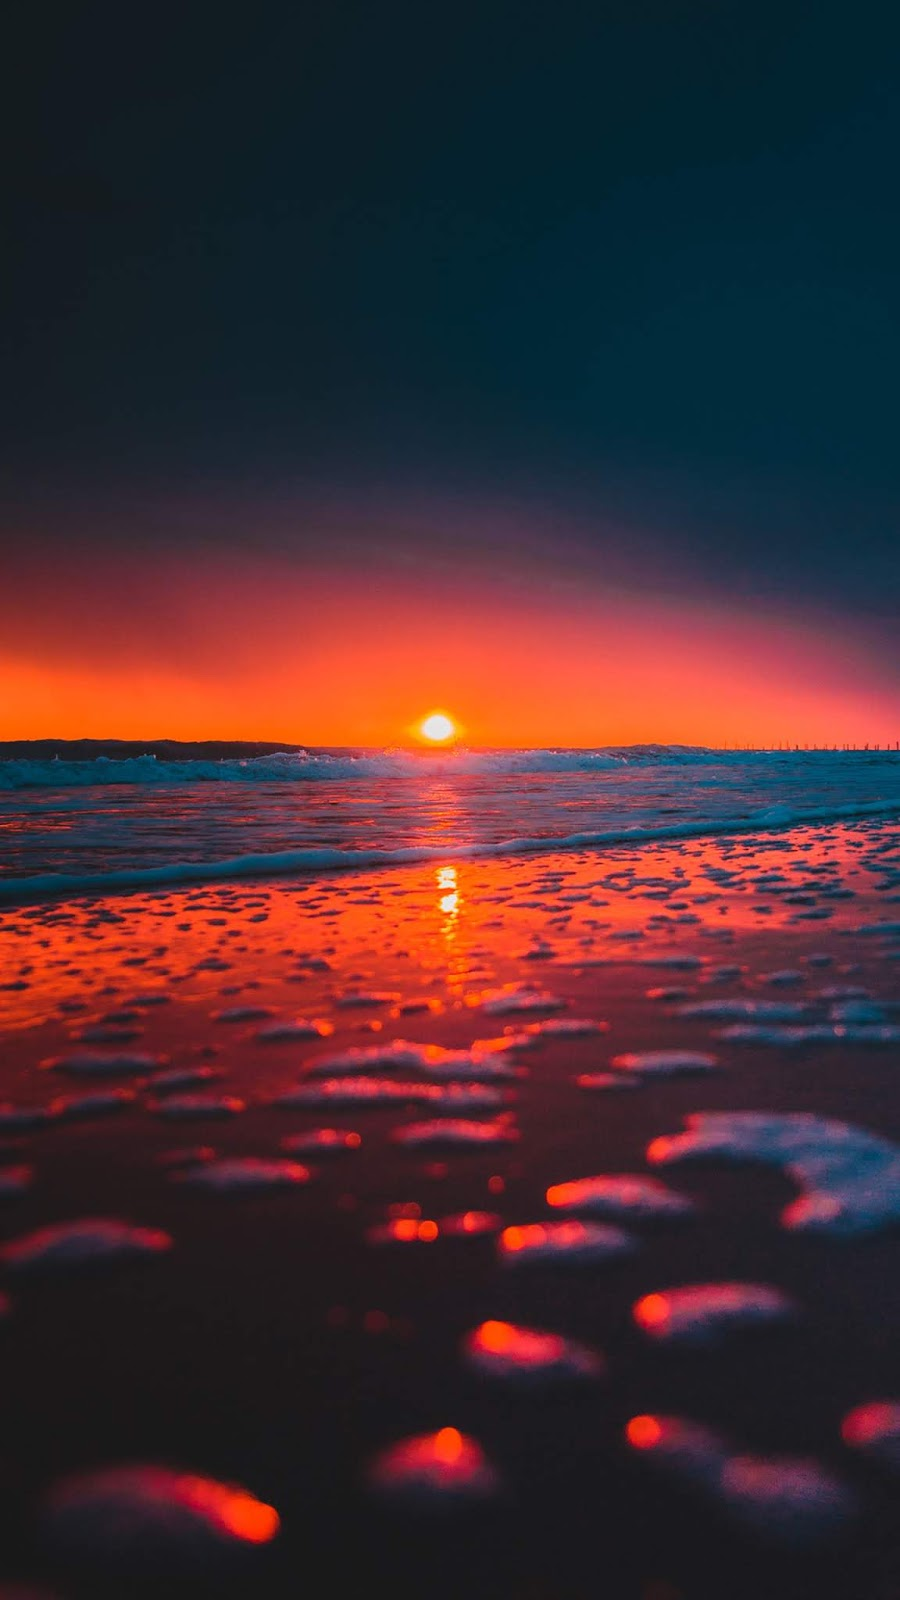 Beach sunset android wallpaper